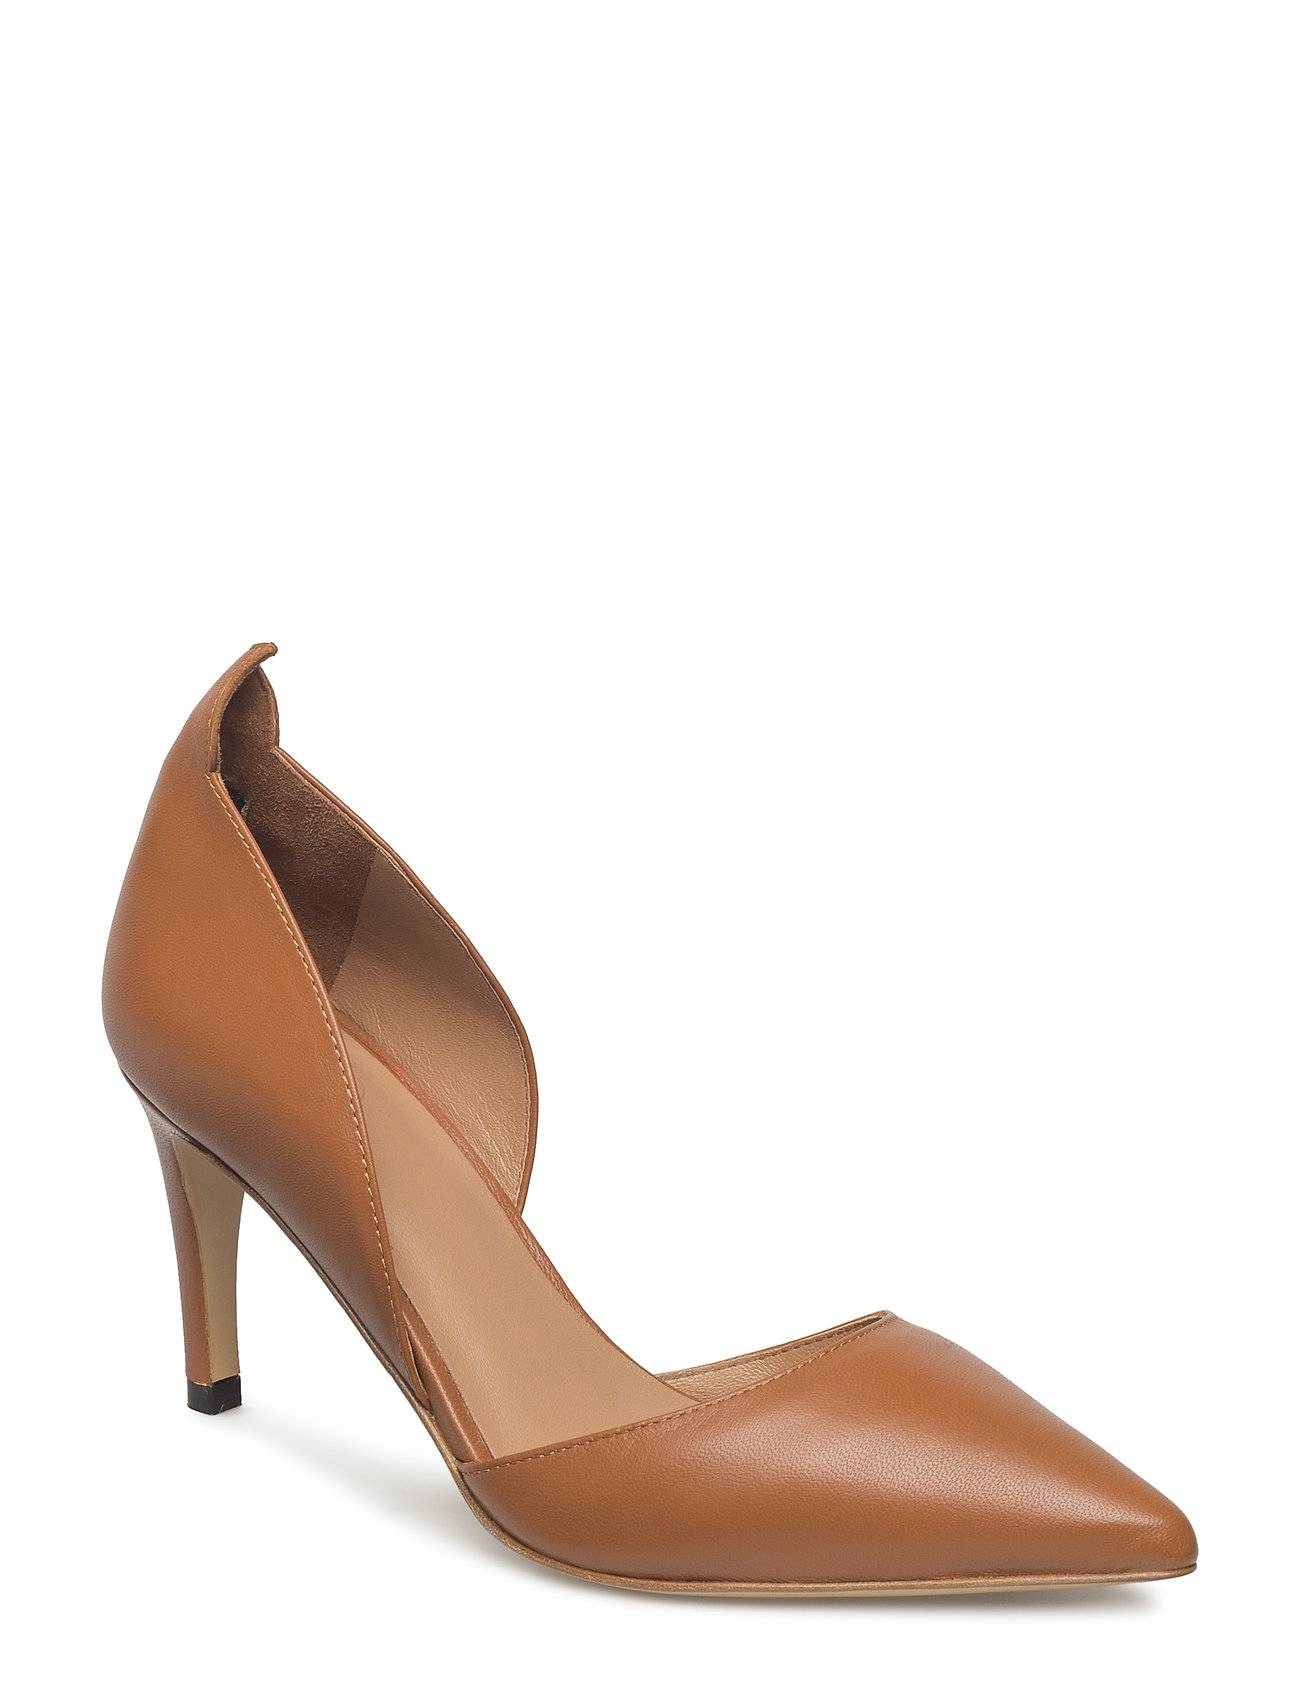 By Malene Birger May Heel